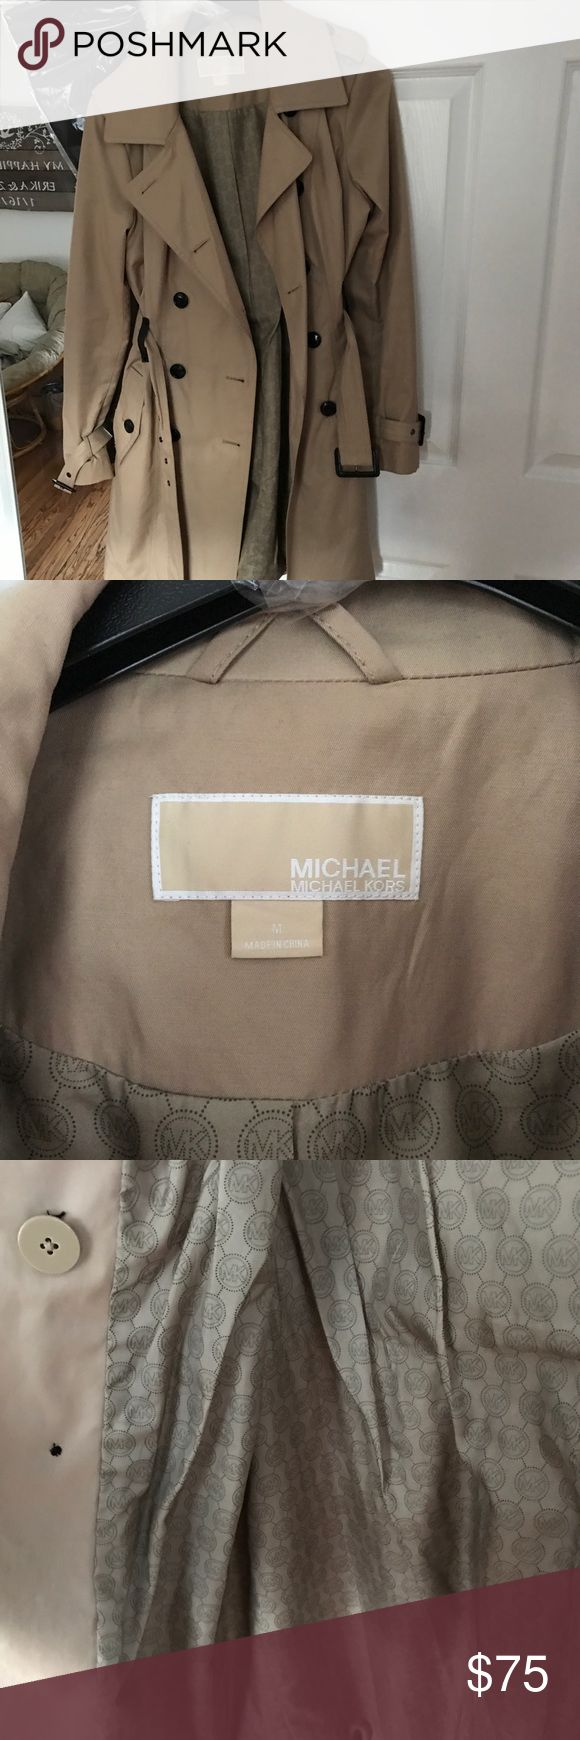 Michael Kors Trench Coat Camel color MK trench coat Michael Kors Jackets & Coats Trench Coats